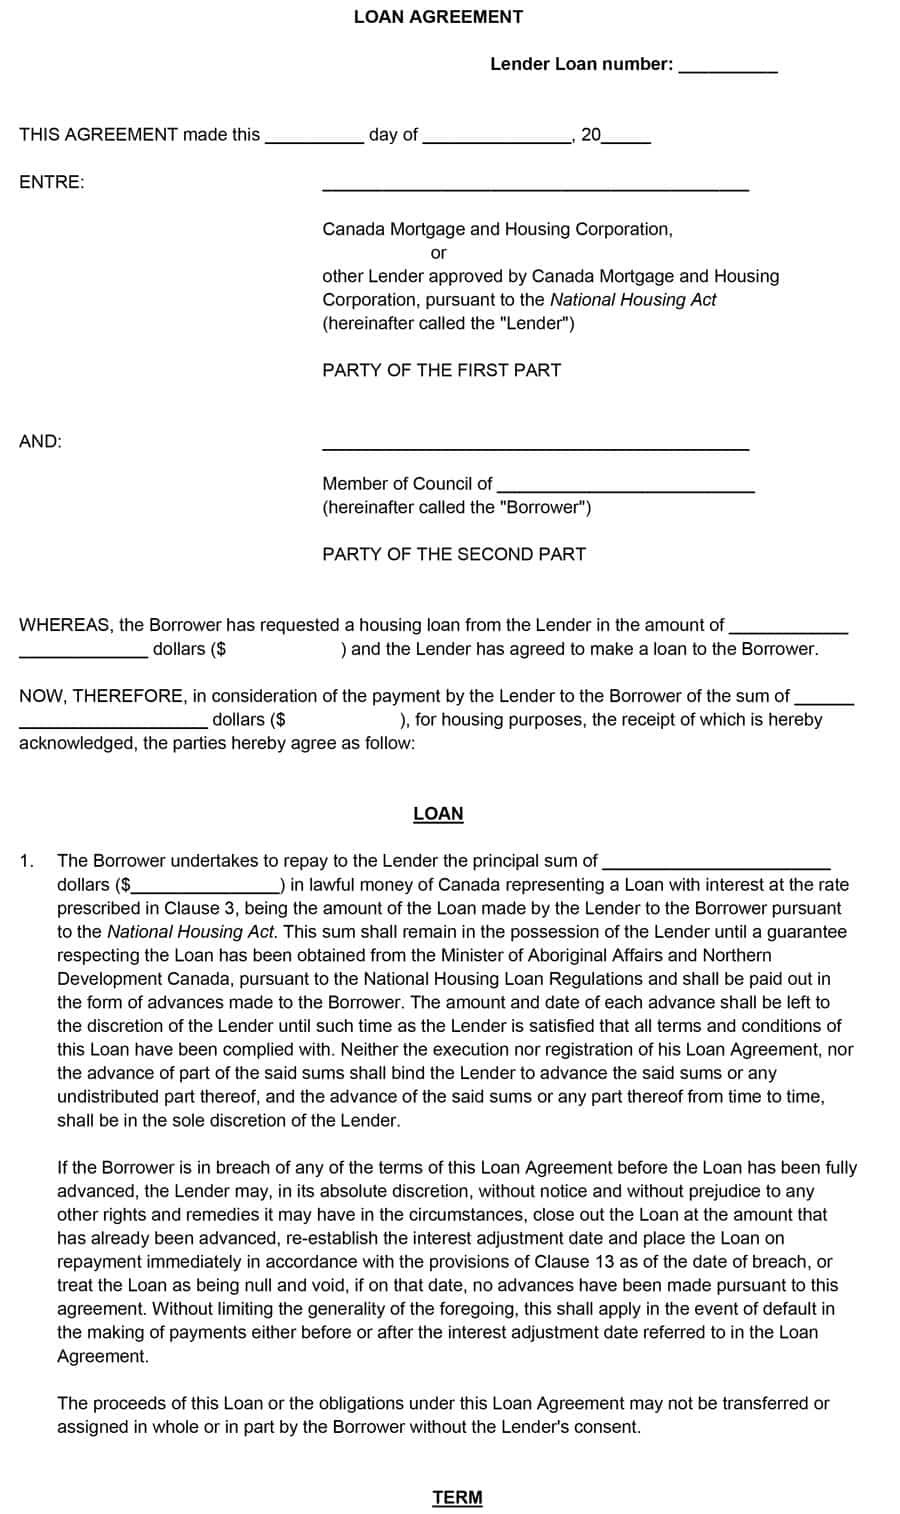 Free Loan Agreement Templates Word  Pdf ᐅ Template Lab Regarding Consumer Loan Agreement Template